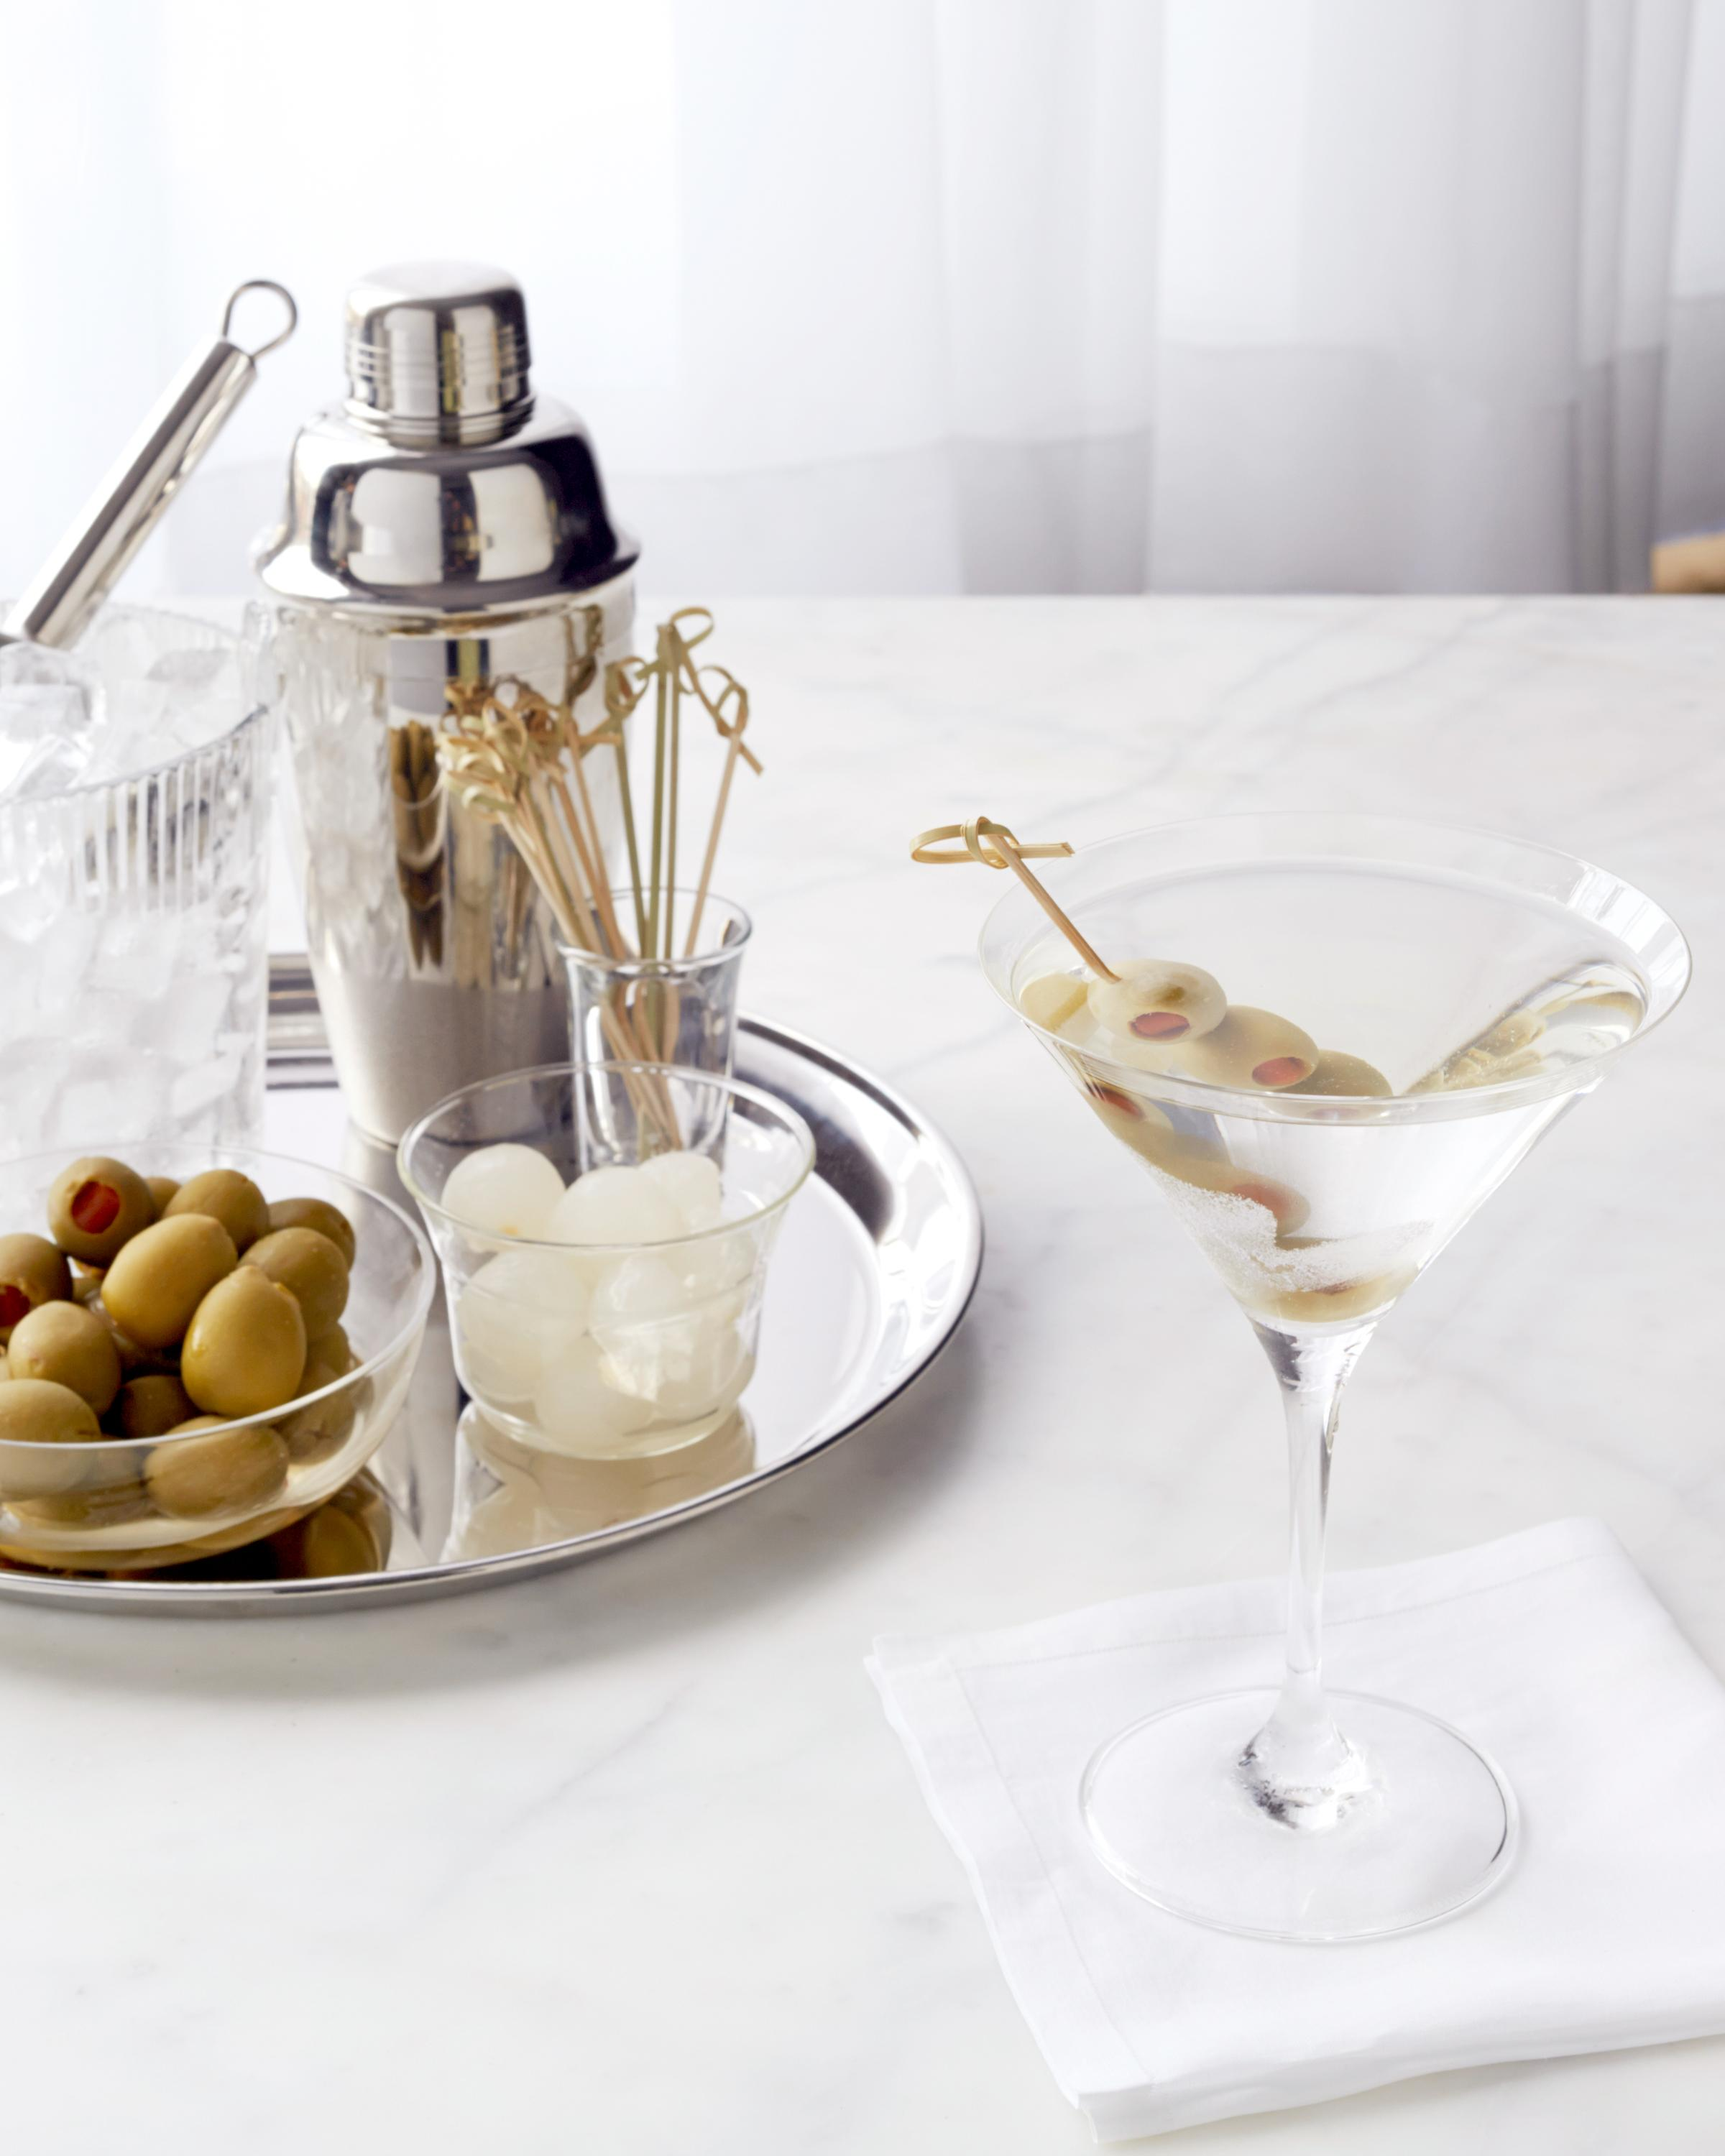 """<p>The art of the <a href=""""https://www.marthastewart.com/2226424/classic-cocktail-recipes"""" rel=""""nofollow noopener"""" target=""""_blank"""" data-ylk=""""slk:classic cocktail"""" class=""""link rapid-noclick-resp"""">classic cocktail</a> is as fresh as it ever was. For the time-pressed, intimidated, or minimalist drinkers out there, we bring you inspiration and reassurance, and some very good libations. Have you noticed that the most storied mixed drinks, like the <a href=""""https://www.marthastewart.com/865776/classic-martinis"""" rel=""""nofollow noopener"""" target=""""_blank"""" data-ylk=""""slk:martini"""" class=""""link rapid-noclick-resp"""">martini</a> pictured here, feature the alchemy of just two-to-three ingredients (we're not counting <a href=""""https://www.marthastewart.com/1507294/glorious-cocktail-garnishes"""" rel=""""nofollow noopener"""" target=""""_blank"""" data-ylk=""""slk:garnishes"""" class=""""link rapid-noclick-resp"""">garnishes</a>)? You don't have to have <a href=""""https://www.marthastewart.com/7615604/how-store-liquor-spirits"""" rel=""""nofollow noopener"""" target=""""_blank"""" data-ylk=""""slk:an arsenal on your liquor tray"""" class=""""link rapid-noclick-resp"""">an arsenal on your liquor tray</a> (or in the kitchen cupboard) to mix them. Unless you'd like to try them all in turn, of course.</p> <p>Some rely on fizz: Think of the irreproachable summer sundowner that is the gin and tonic. The wayward <a href=""""https://www.marthastewart.com/1008078/pimms-cup"""" rel=""""nofollow noopener"""" target=""""_blank"""" data-ylk=""""slk:Pimm's Cup"""" class=""""link rapid-noclick-resp"""">Pimm's Cup</a>, companion to <a href=""""https://www.marthastewart.com/7837458/marthas-favorite-summer-cocktail-hour-recipes"""" rel=""""nofollow noopener"""" target=""""_blank"""" data-ylk=""""slk:poolside parties"""" class=""""link rapid-noclick-resp"""">poolside parties</a>, and the <a href=""""https://www.marthastewart.com/1165549/moscow-mule"""" rel=""""nofollow noopener"""" target=""""_blank"""" data-ylk=""""slk:Moscow Mule"""" class=""""link rapid-noclick-resp"""">Moscow Mule</a>, gingery and cold in a copper cup. Or the elegant <a href=""""htt"""